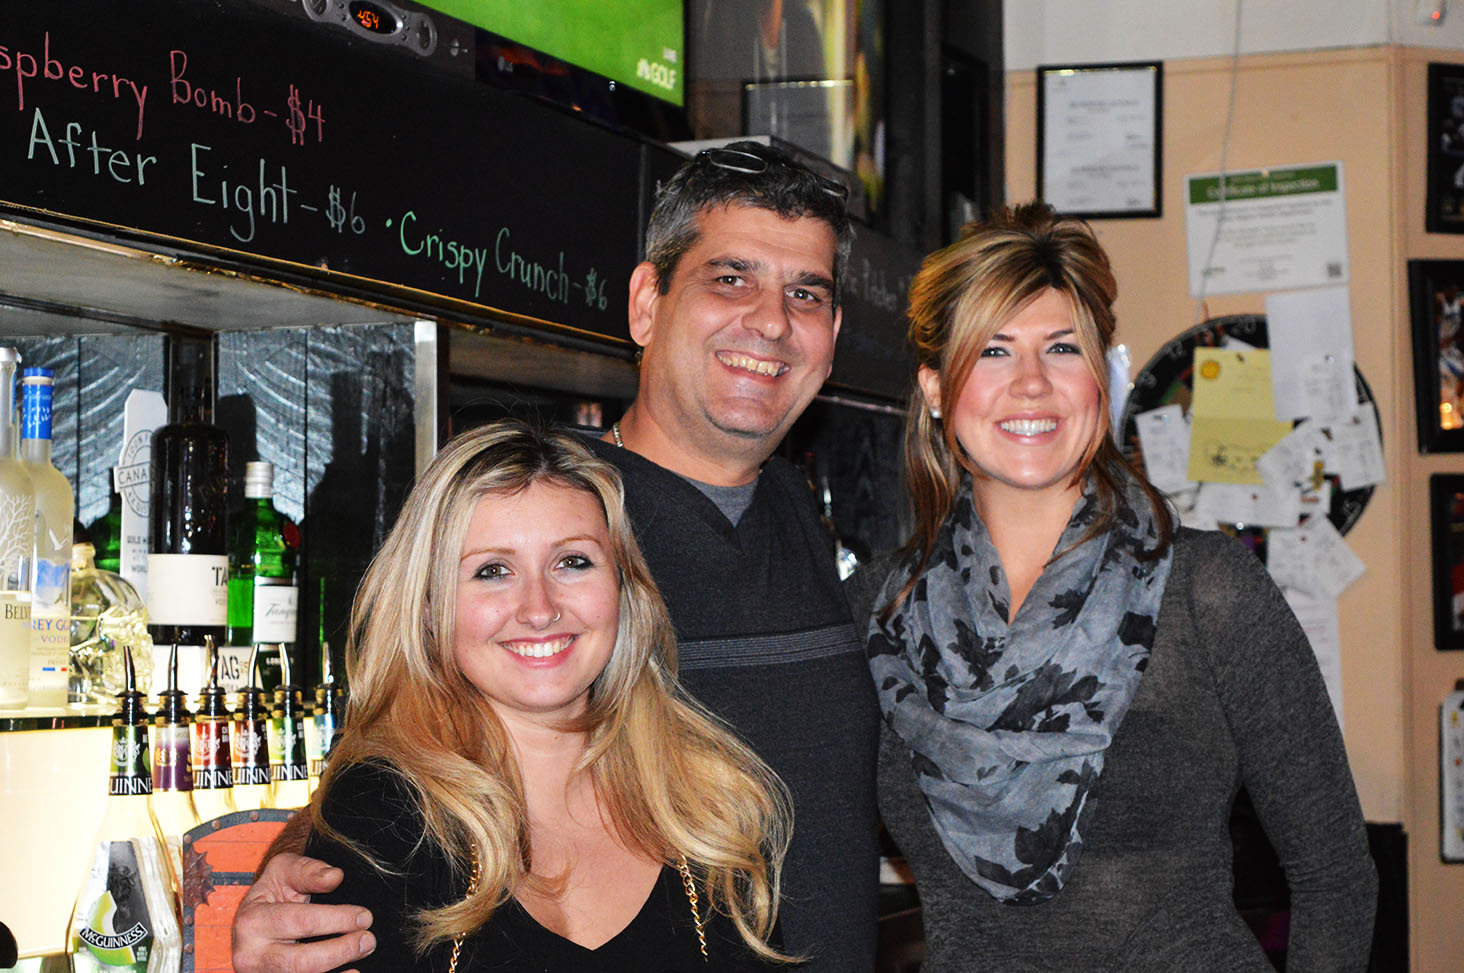 The owner of Shakers, Tony Coelho, stands with two of his employees behind the bar.